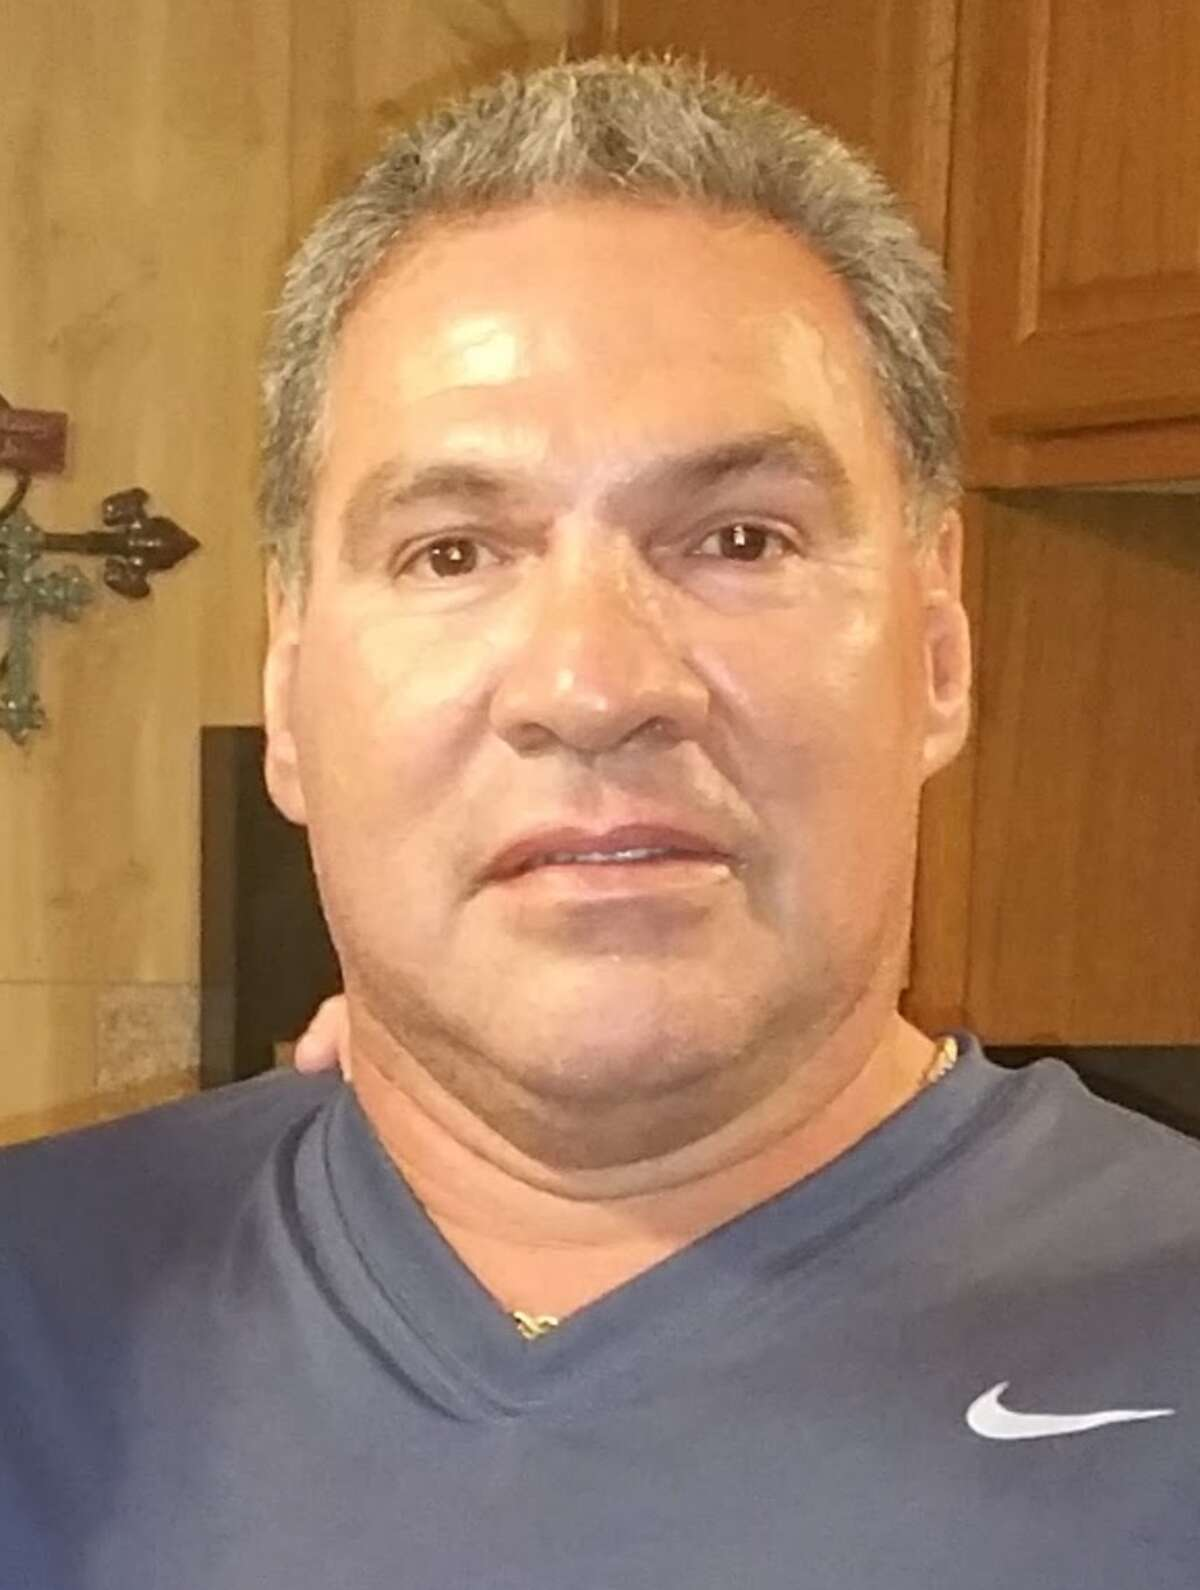 Luis Robles, a 56-year-old Pasadena man, was killed last week after an alleged drunk driver crashed into his car. He was described by family as a man who enjoyed simply pleasures, like watching football and arm wrestling with family.